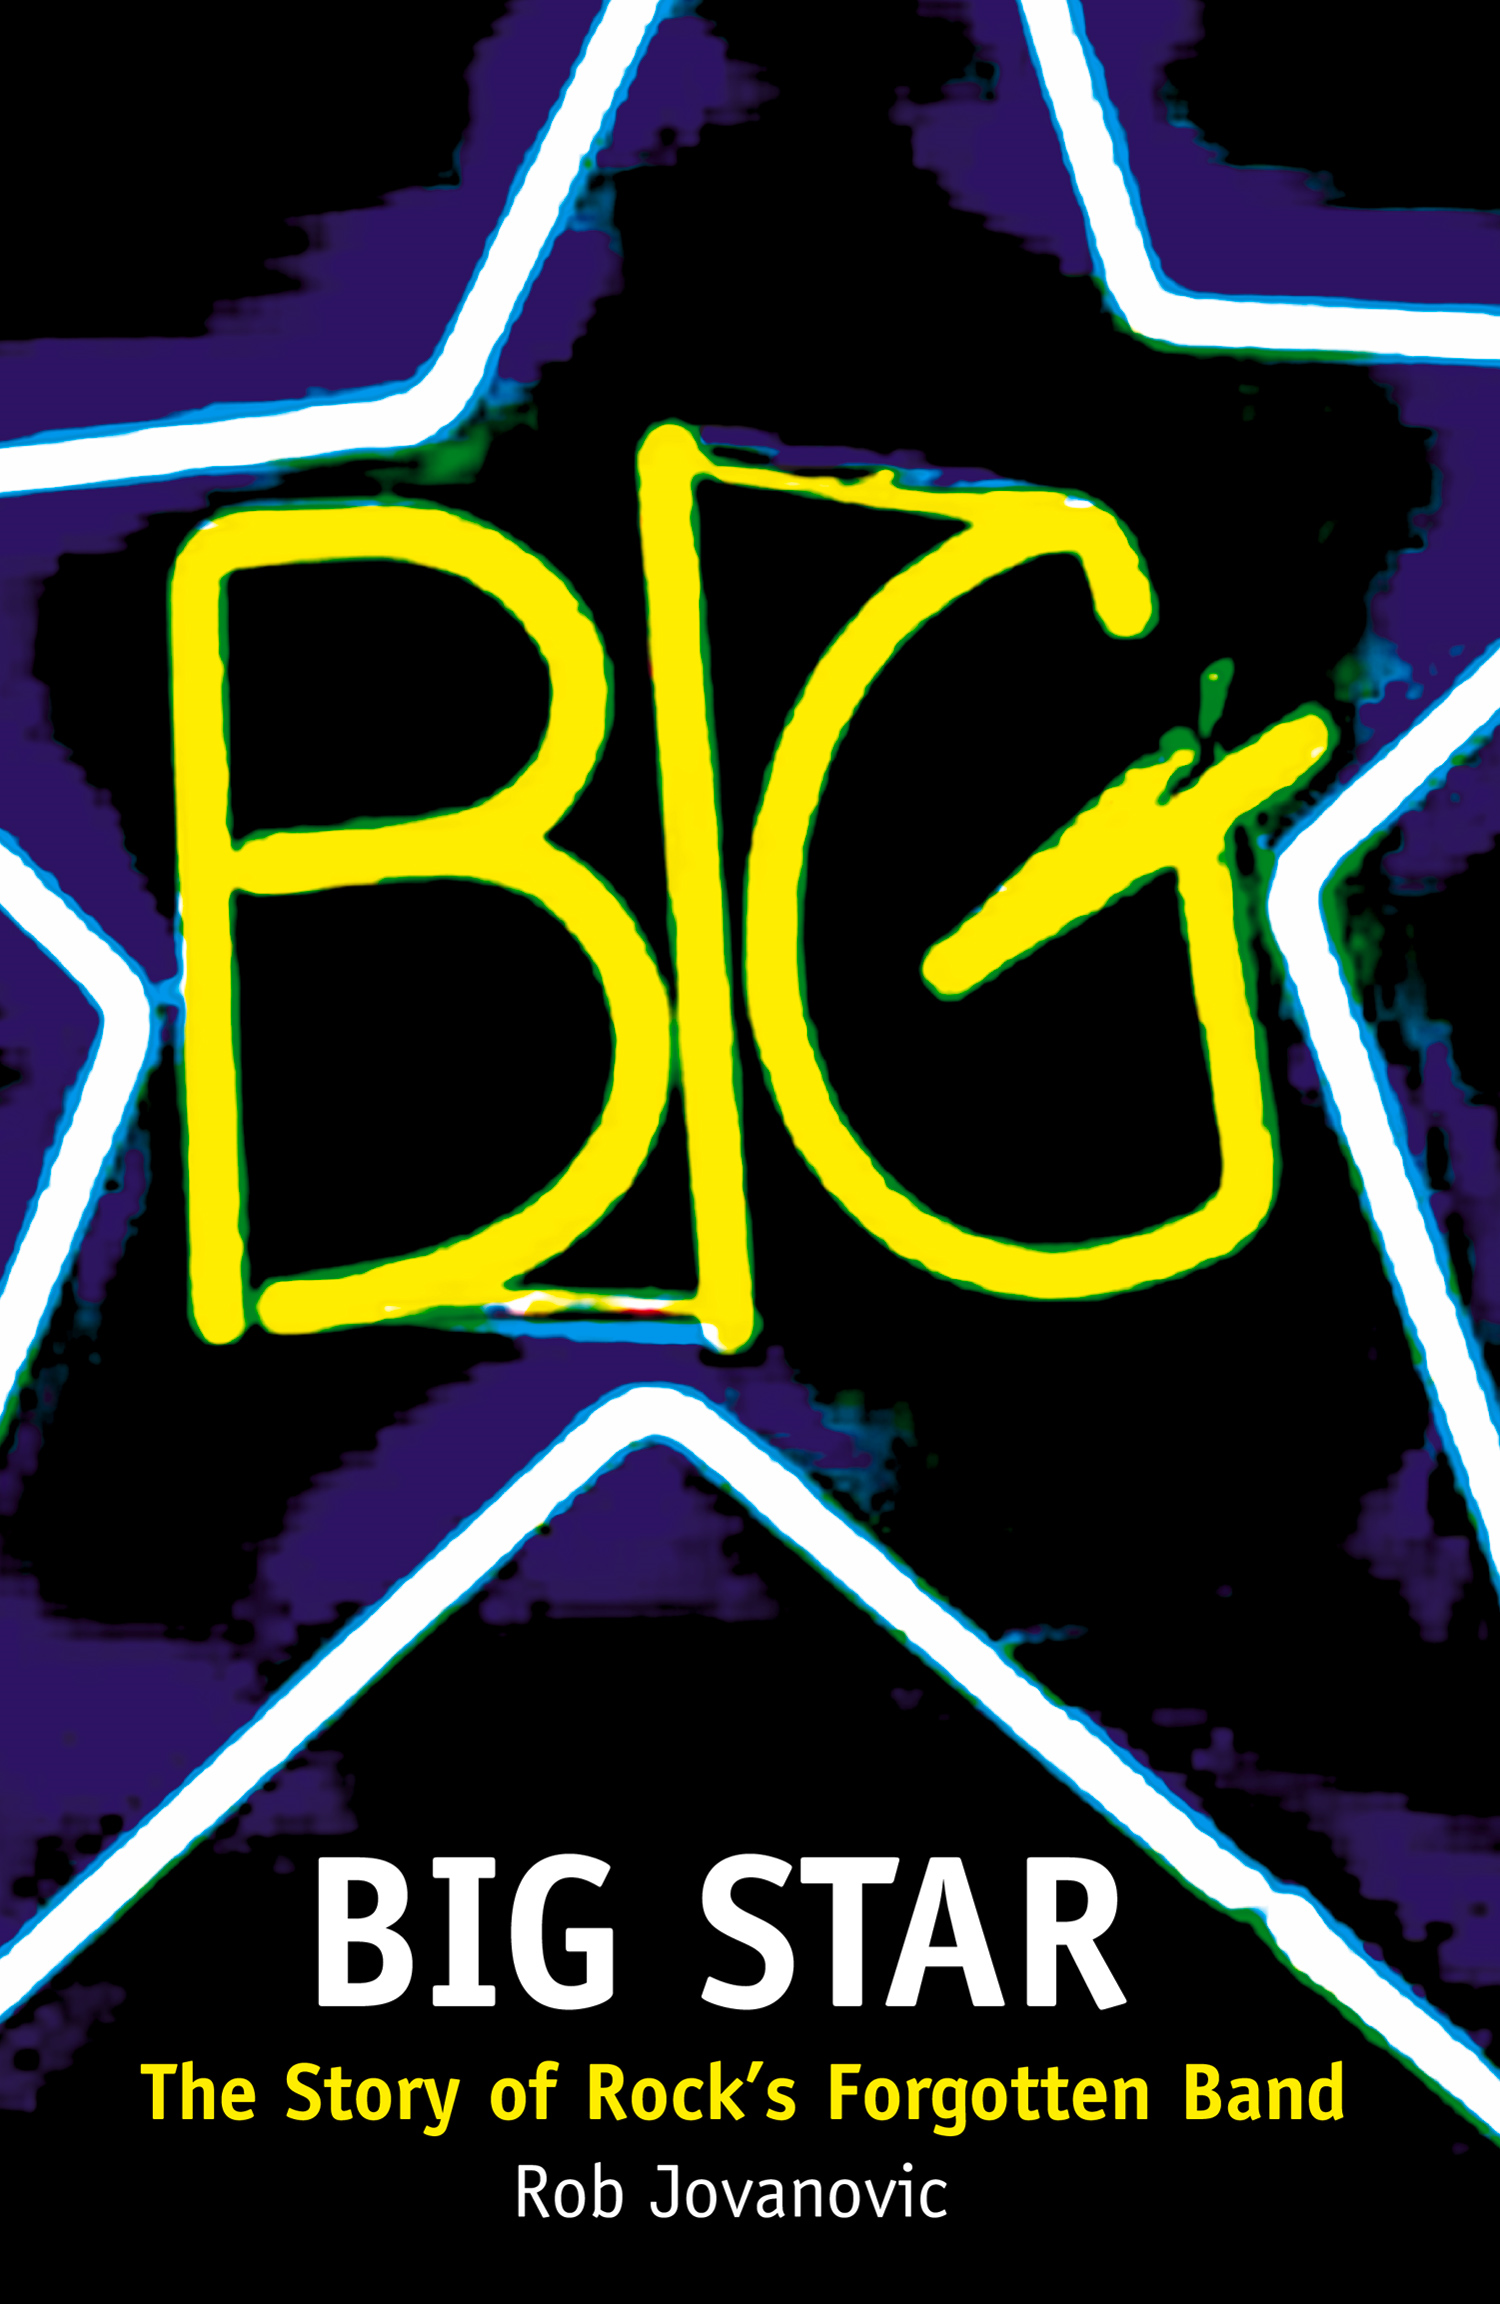 Big Star: The Story of Rock?s Forgotten Band